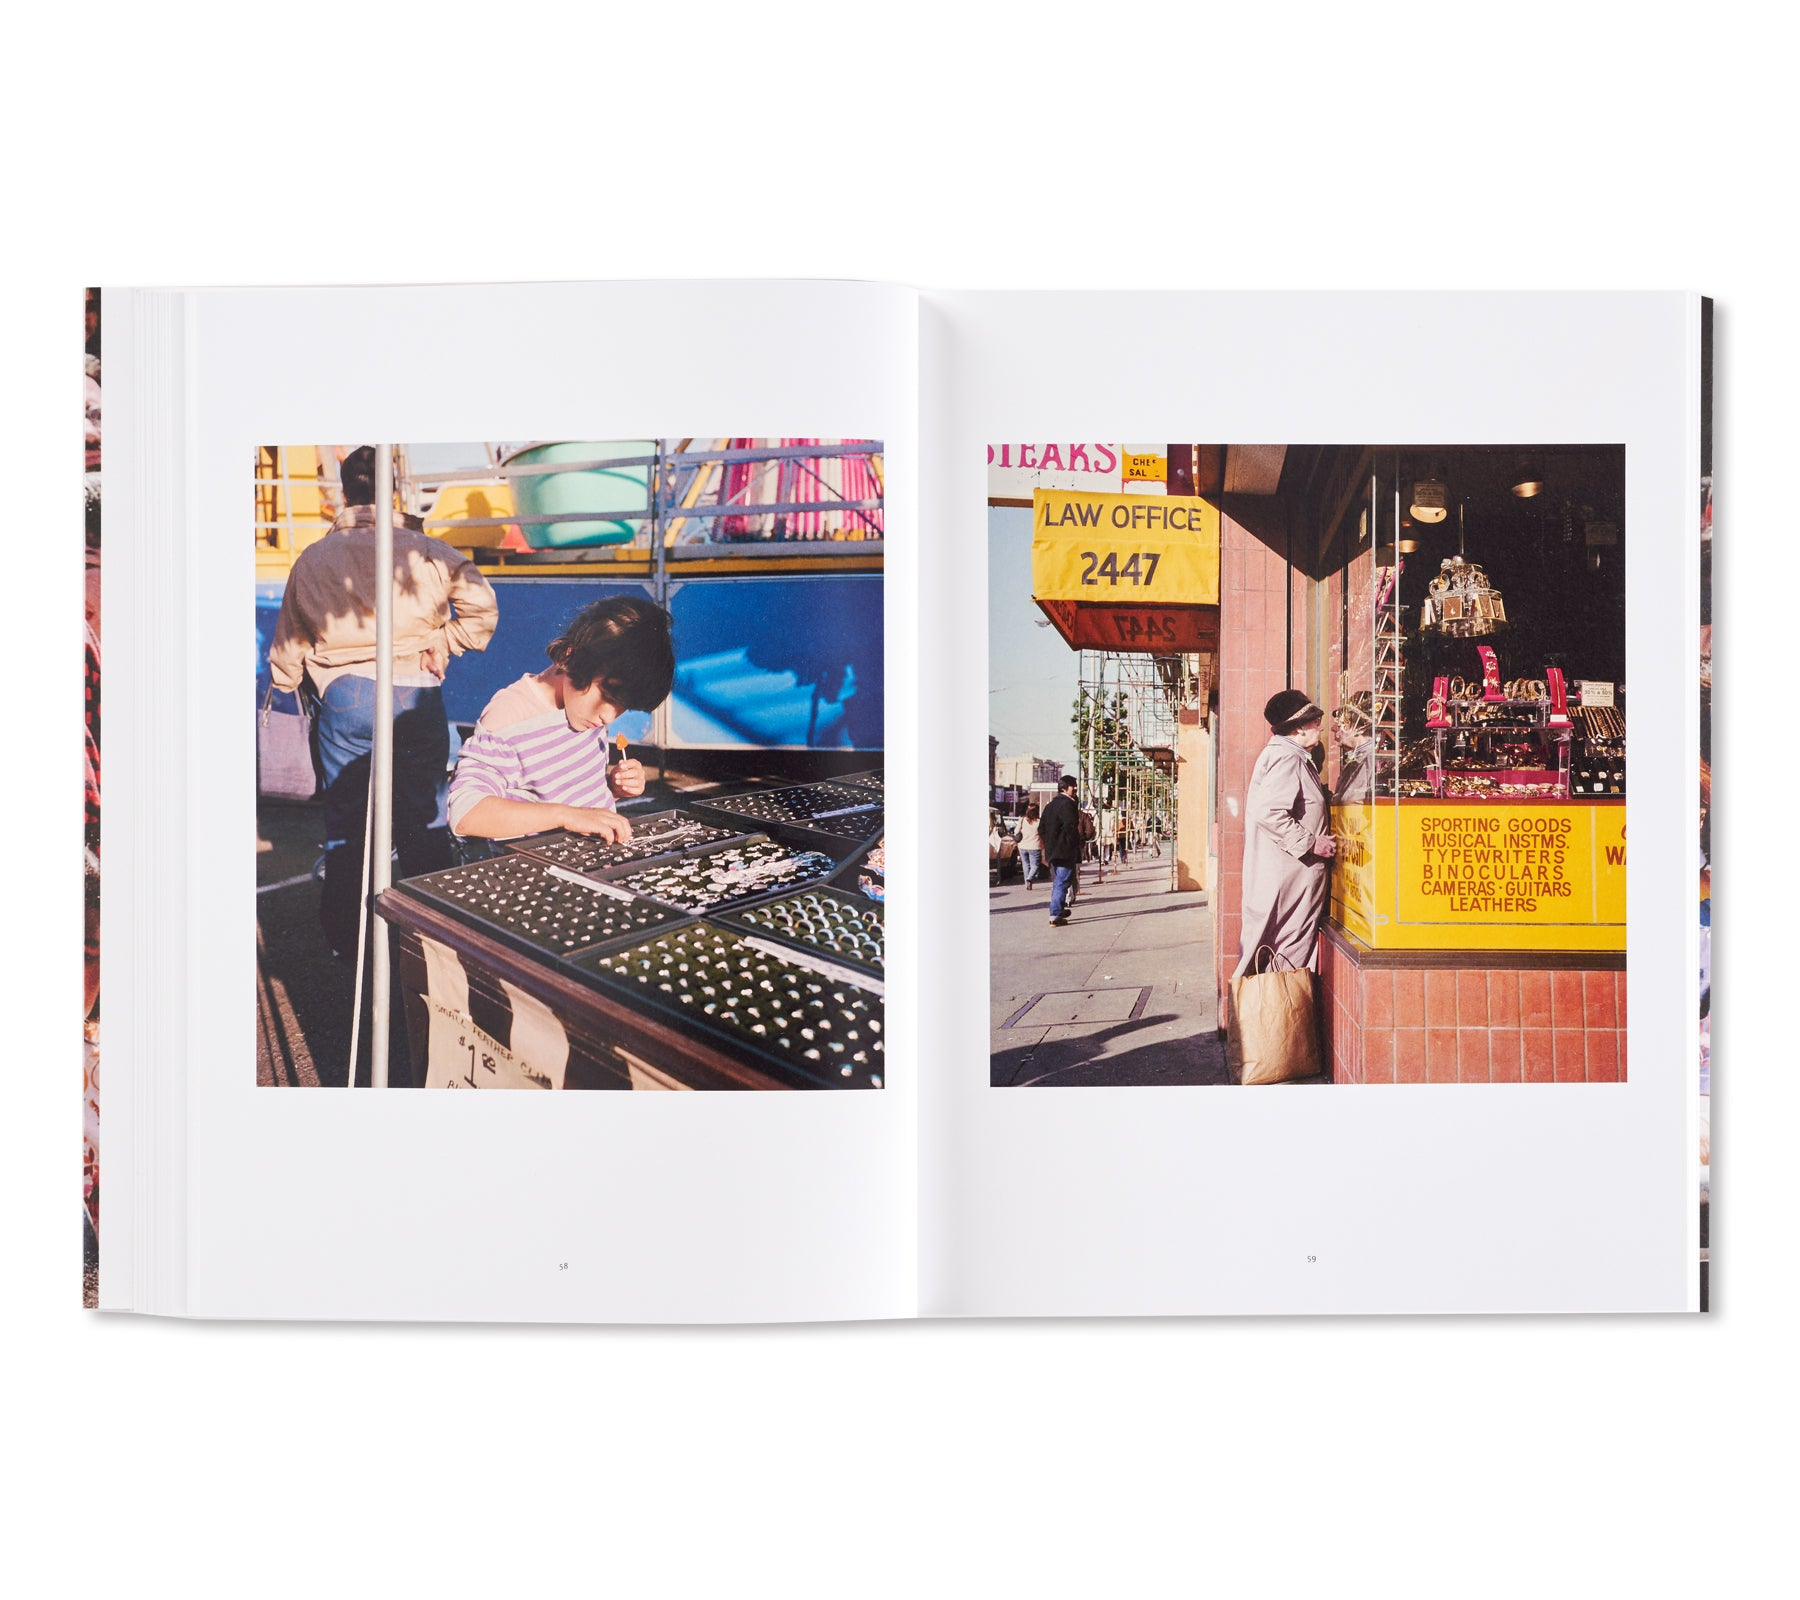 PUBLIC MATTERS by Janet Delaney [SIGNED]